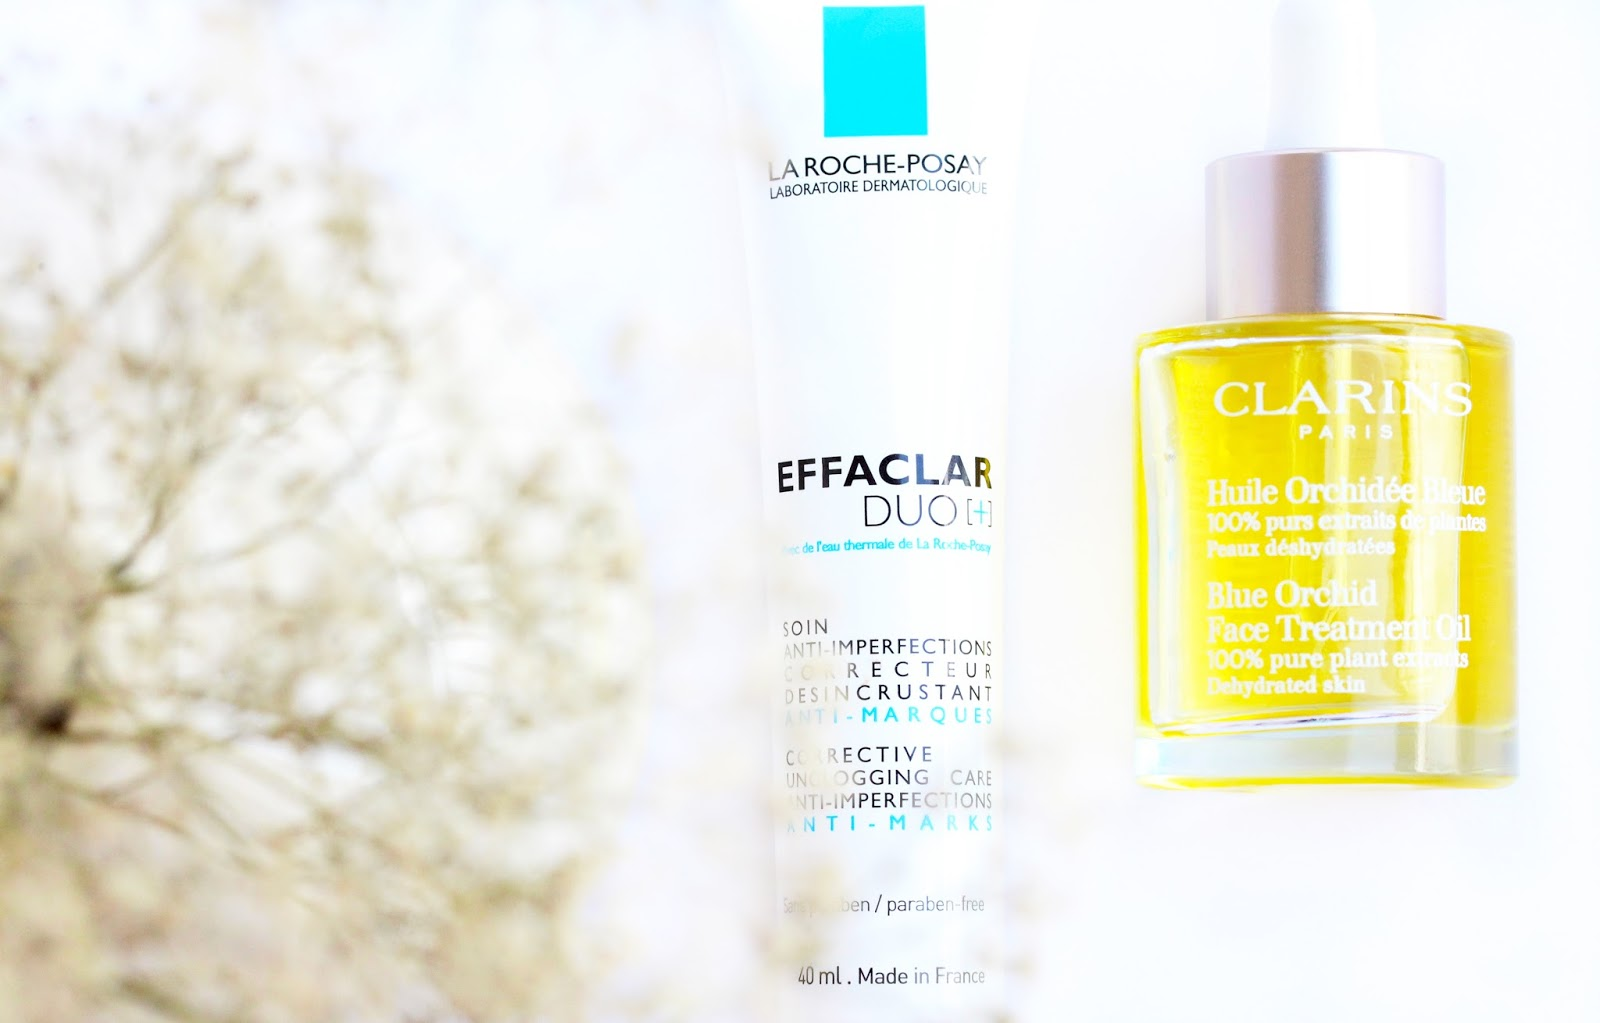 how to minimize pores, Clarins Blue orchid face oil,La Roche-Posay Effaclar Duo